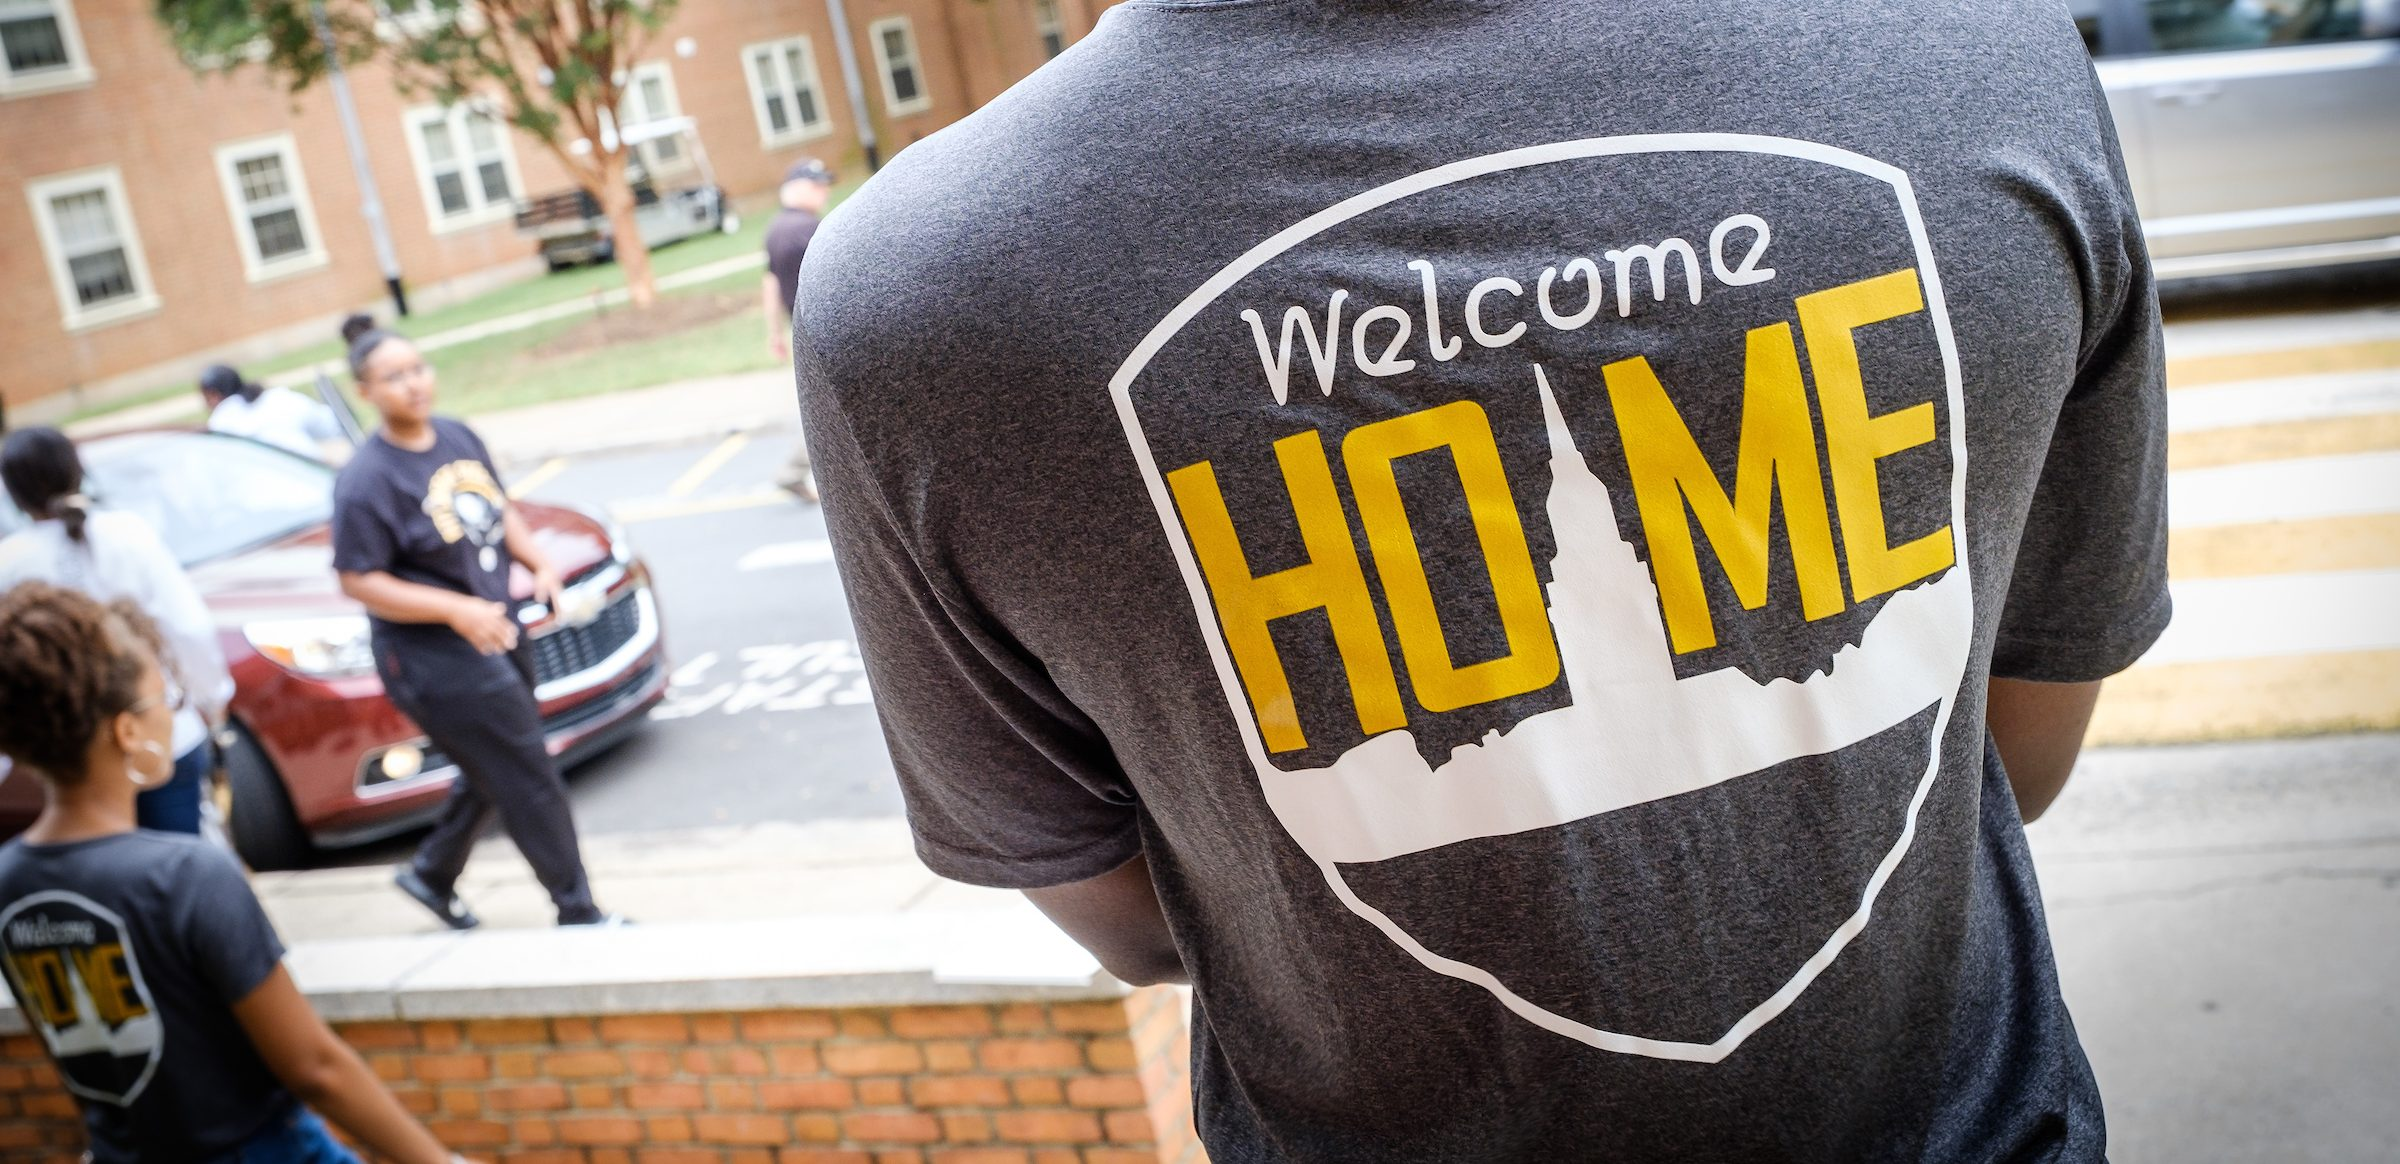 The Welcome Home logo as photographed on a tshirt of an RA during move in day